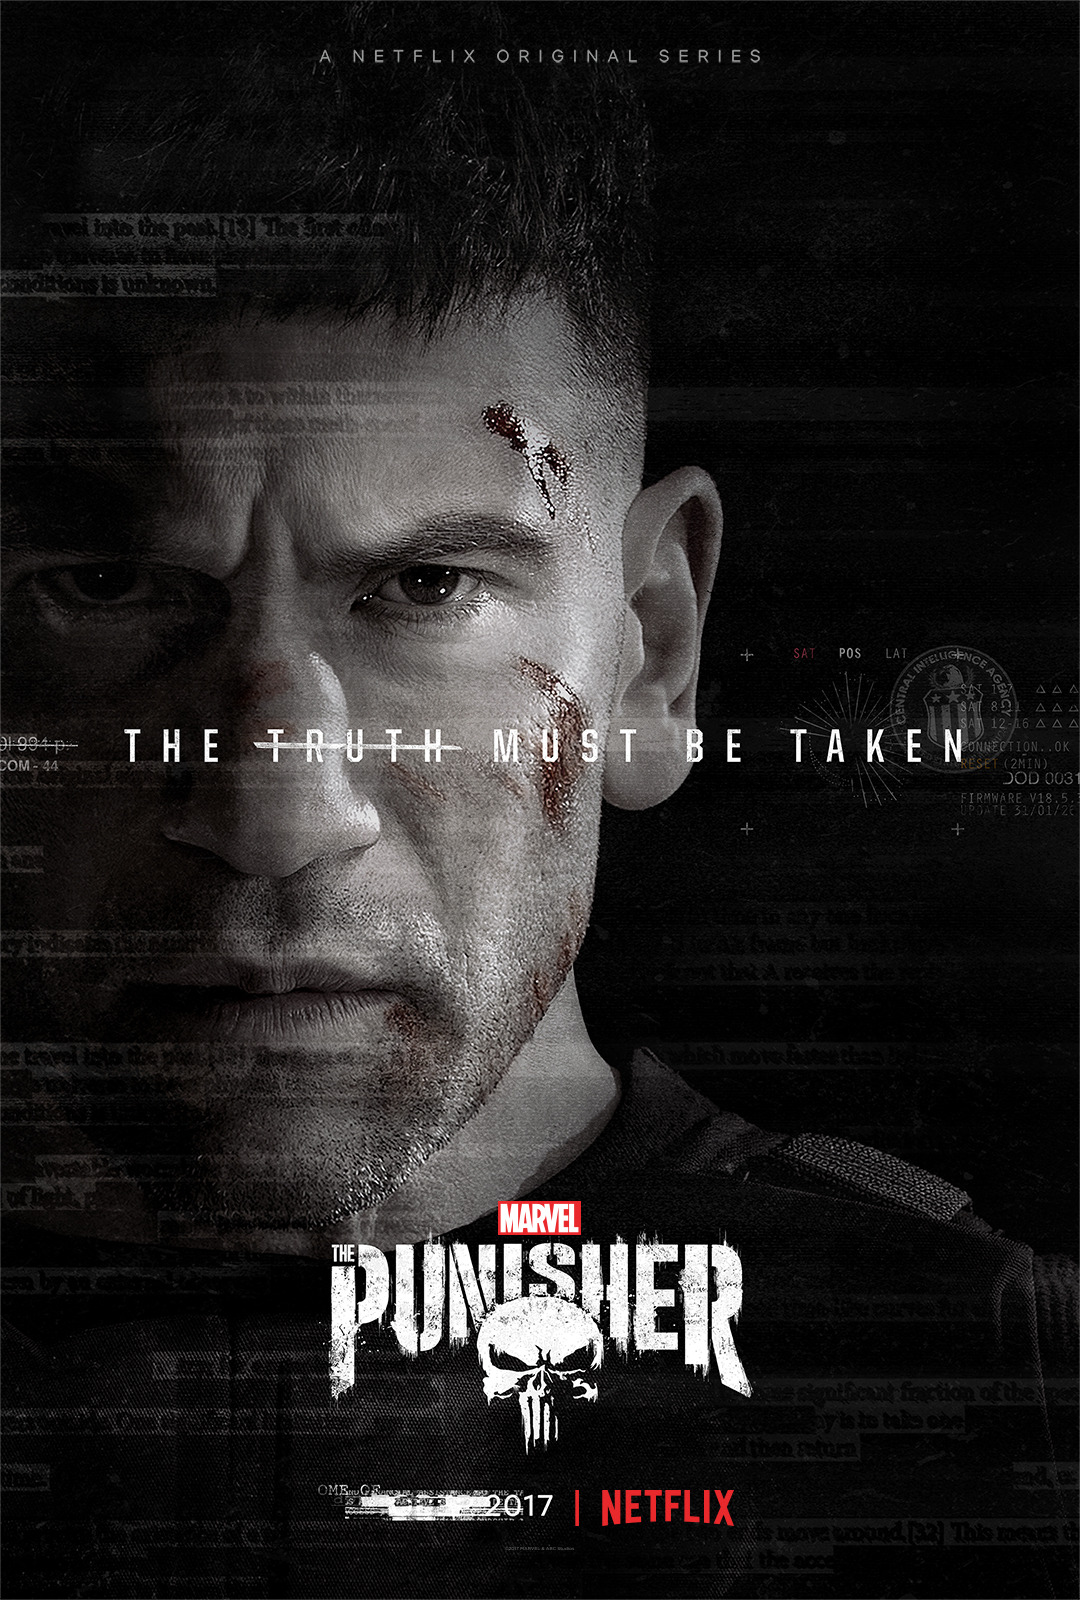 The Punisher - Season 1 Poster - The Truth Must Be Taken